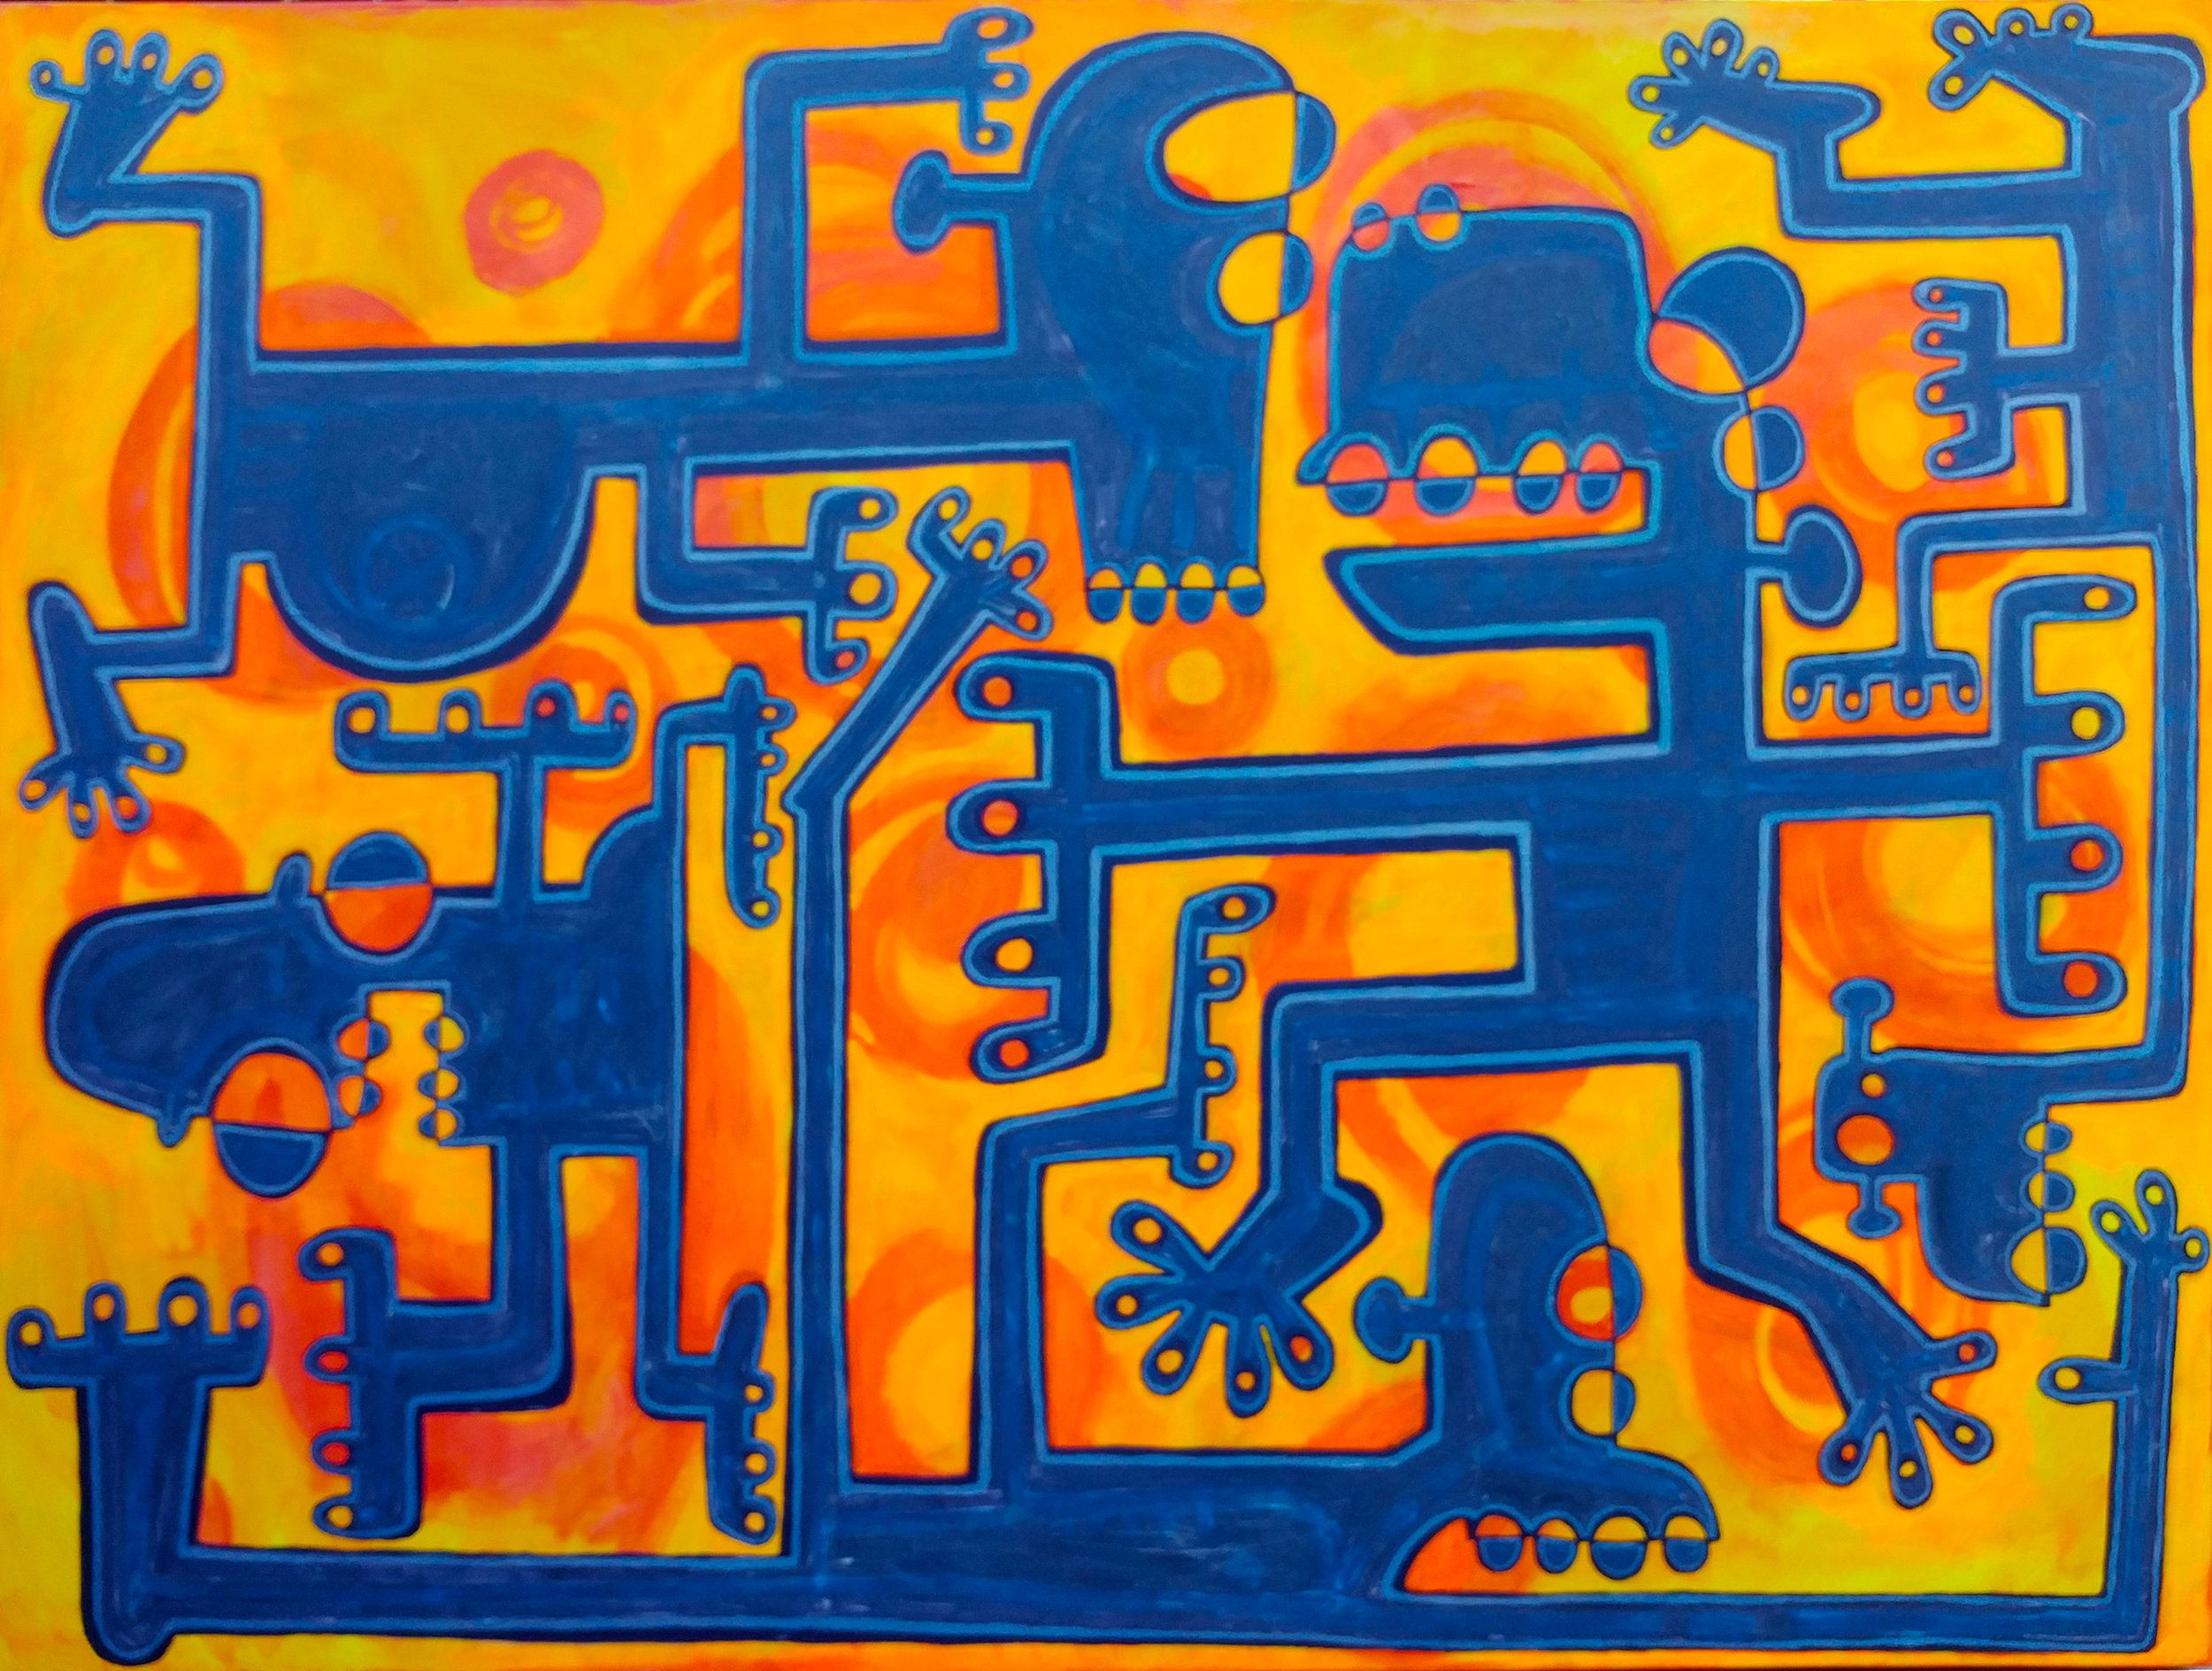 Nite Konectionz , 2017, acrylic and phosphorescent paint on canvas, 36 x 48 inches  (inquire)